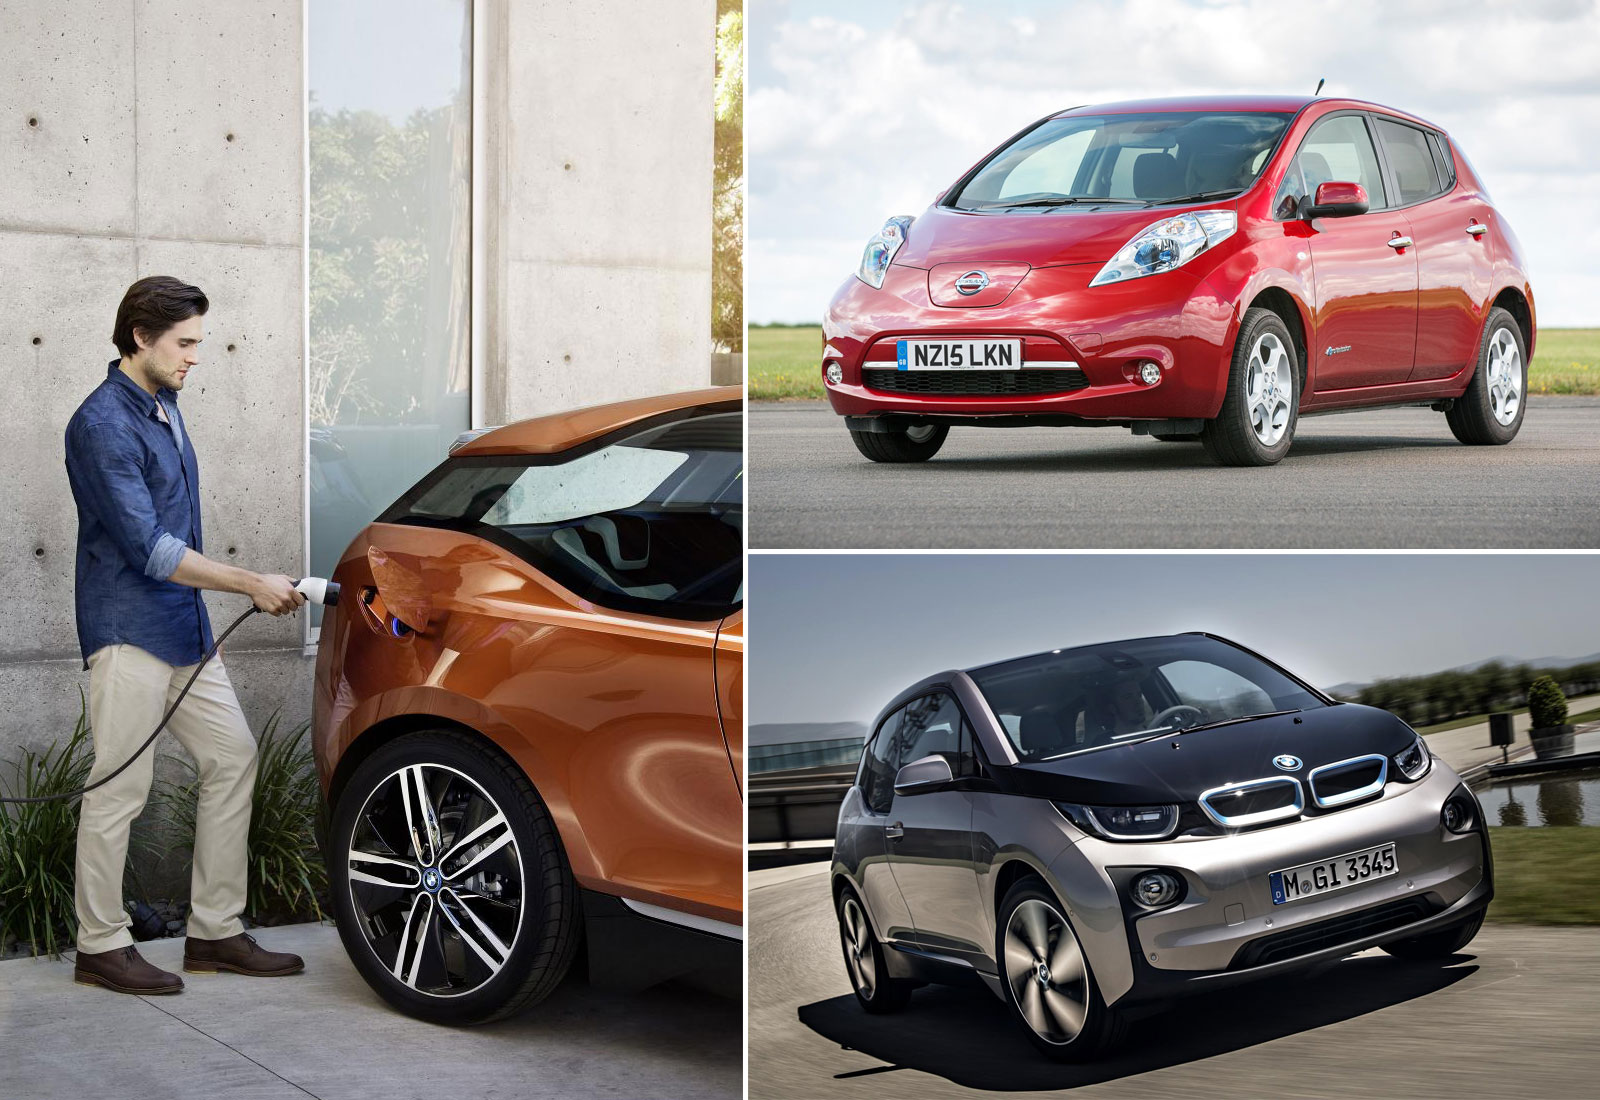 Best Used Electric Vehicle to Buy in the UK